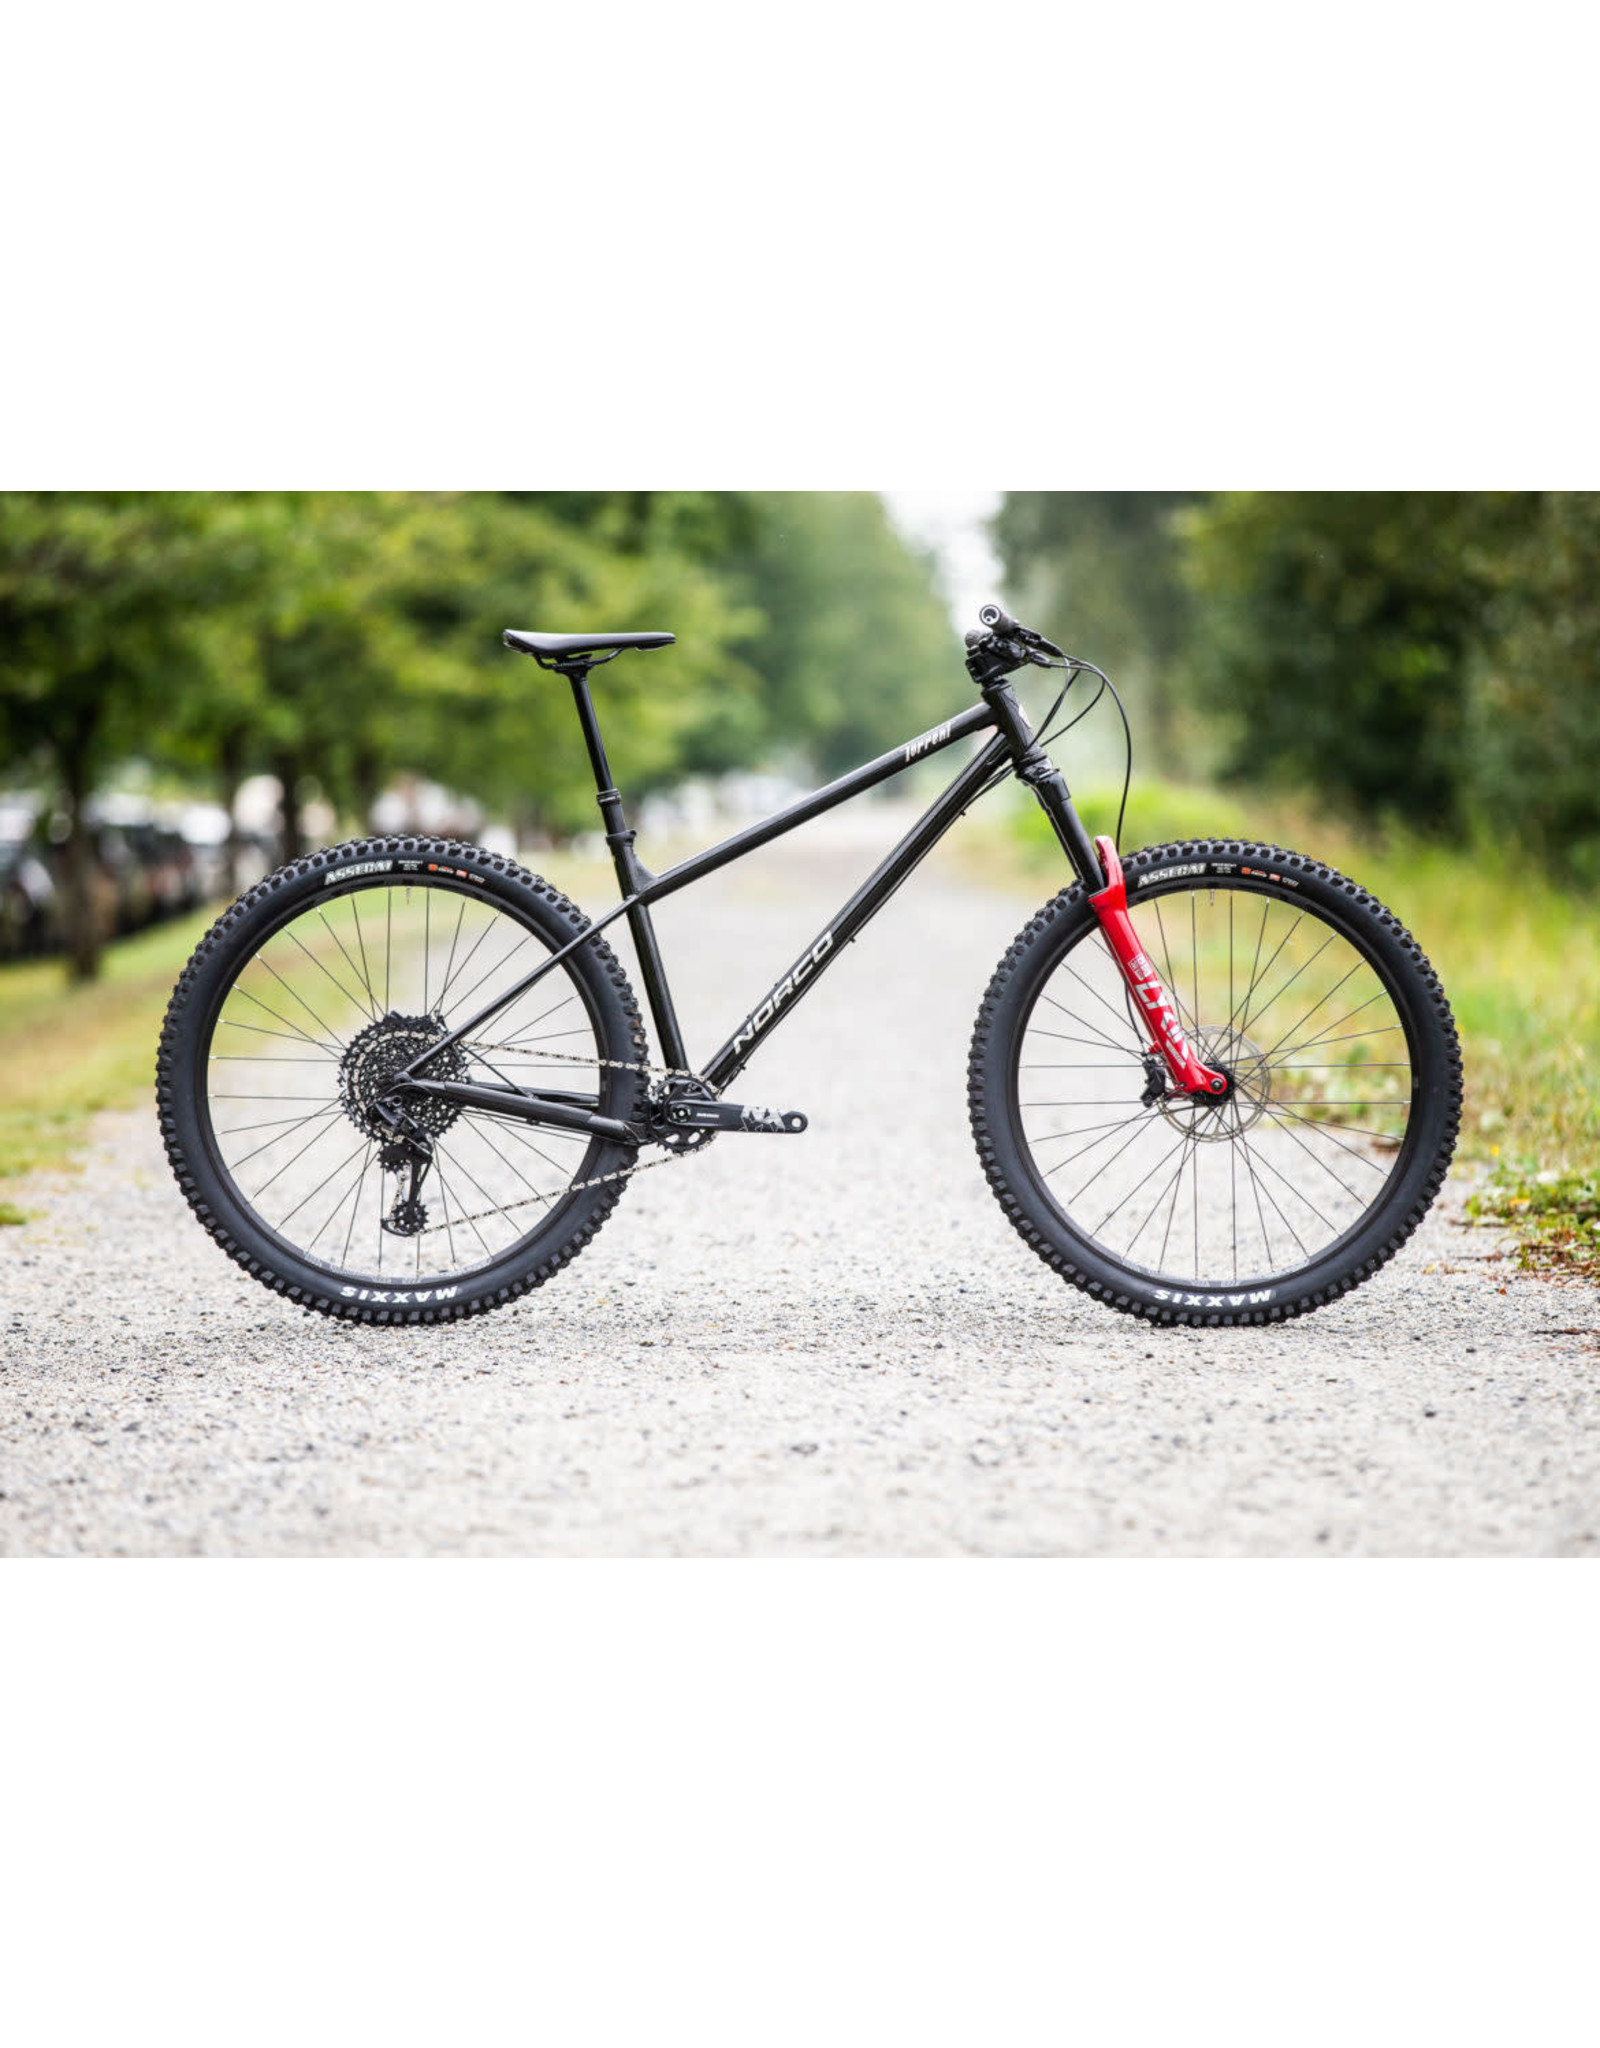 NORCO Bikes Rental Torrent HT S1 Small 29 Black/Chrome